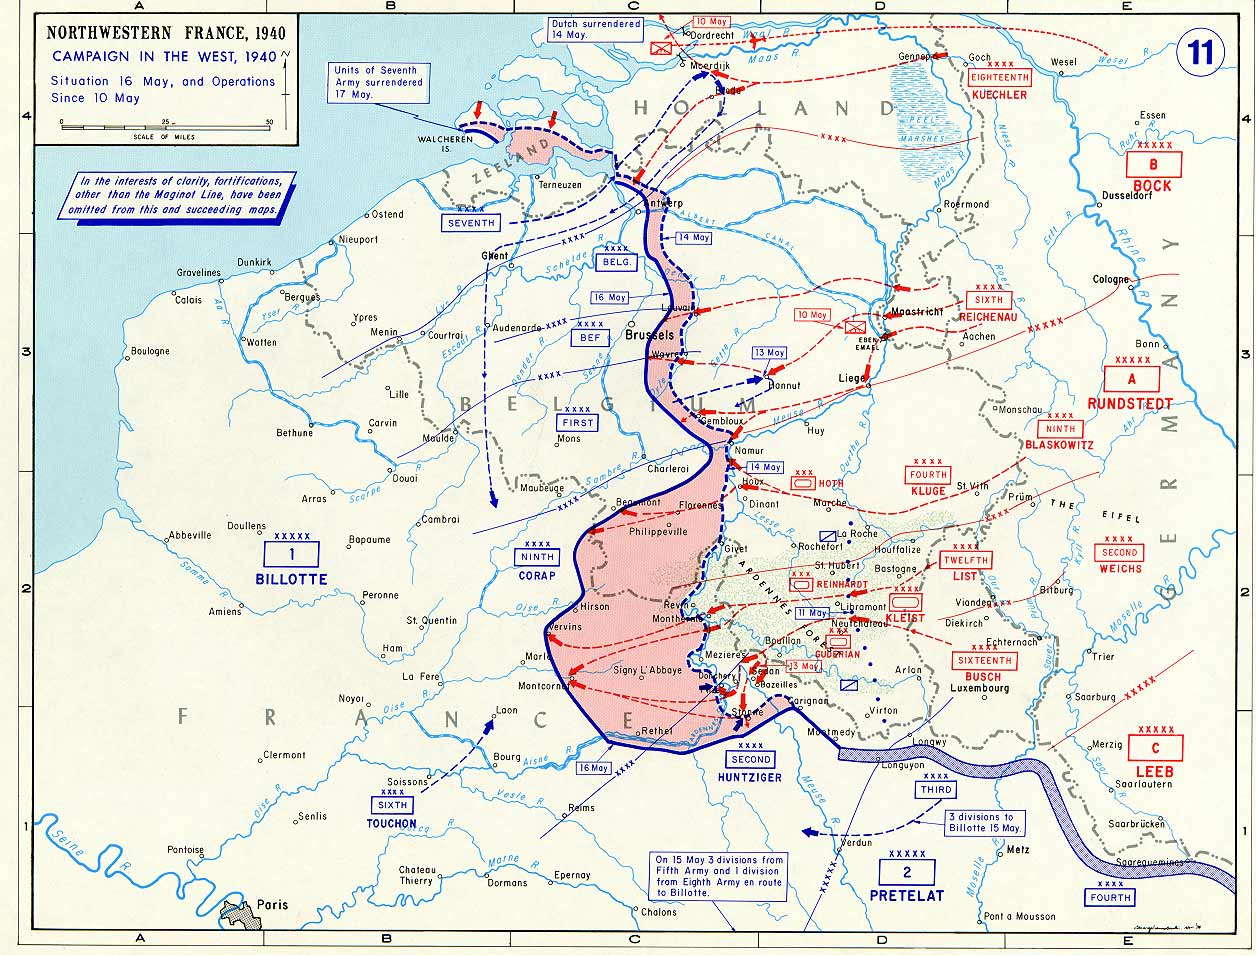 Map of Northwestern France (May 1940)